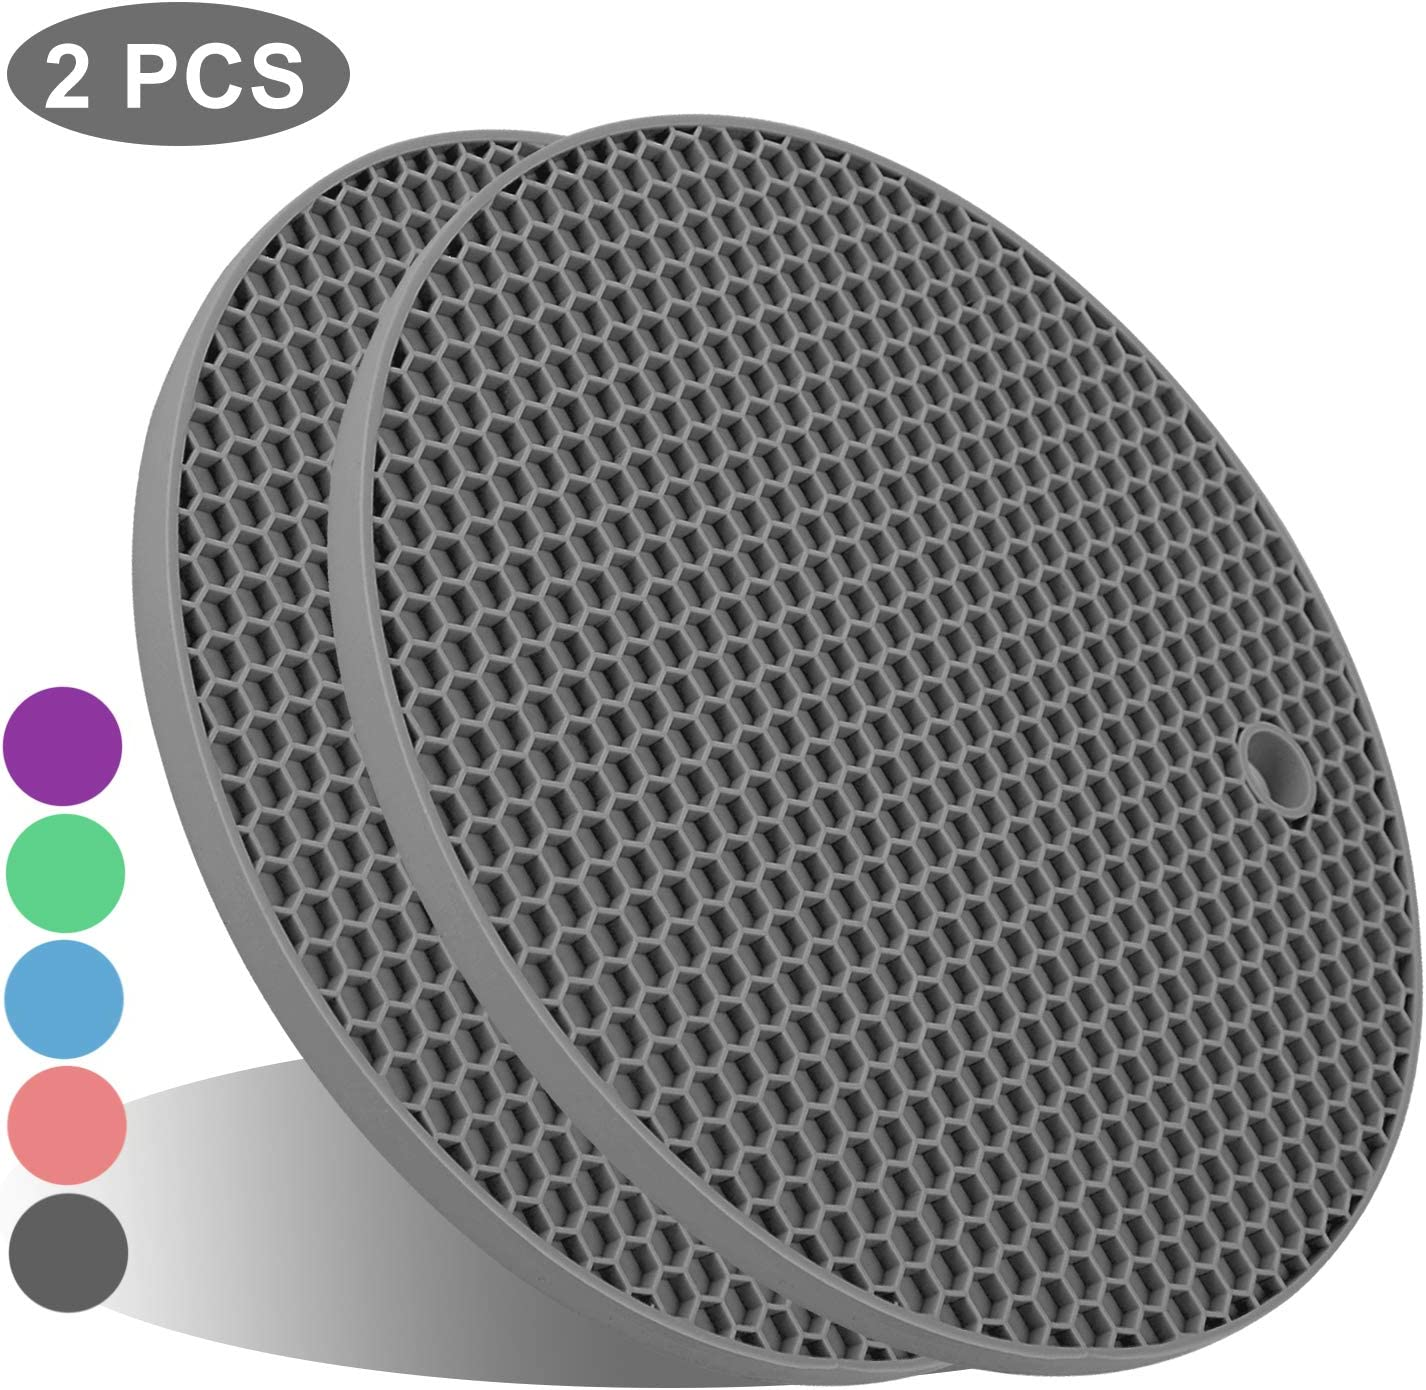 UXUNNY Silicone Pot Holders, Trivets for Hot Dishes - Thick Hot Pads for Kitchen, Heat Resistant Trivet Mats, Oven Pads, Hot Mats for Hot Pots and Pans - Christmas Decor (Gray, 2 PSC)